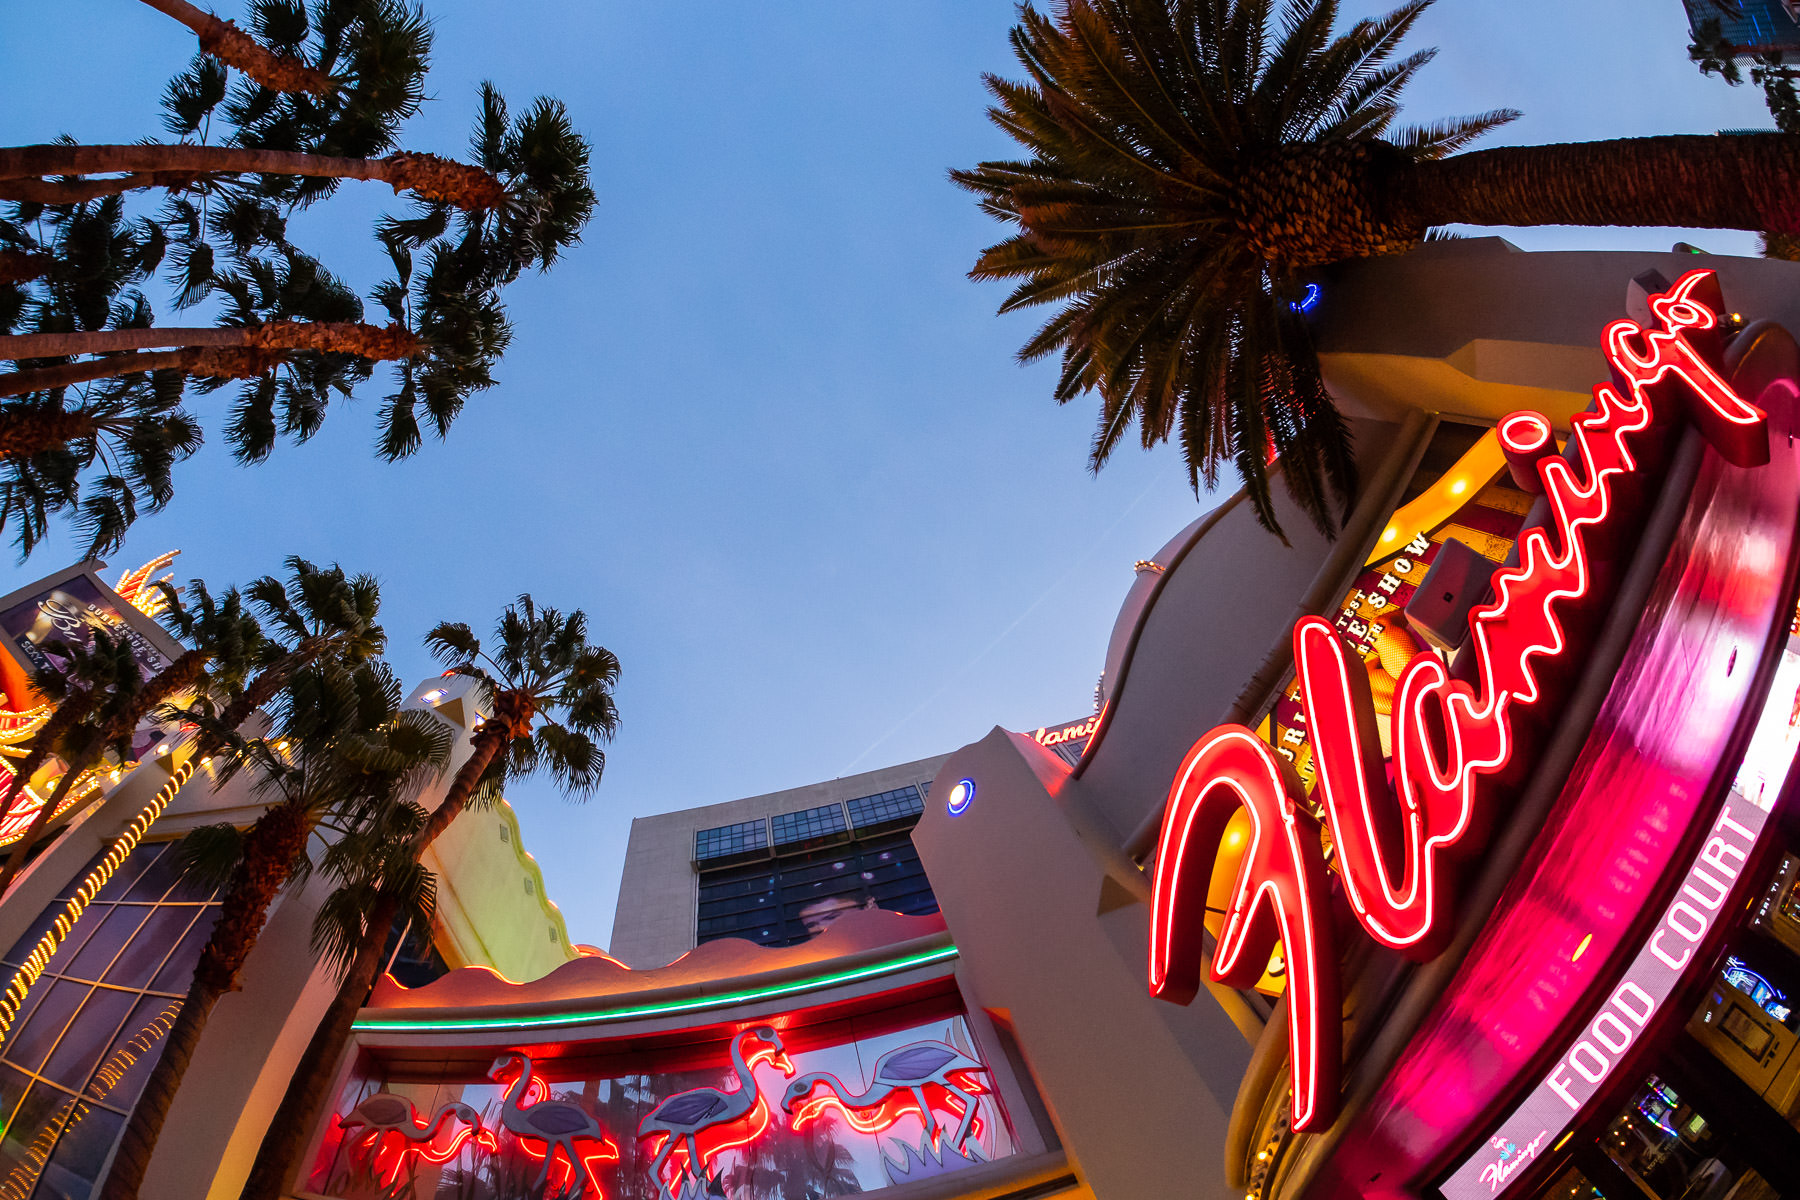 One of the signs at Las Vegas' Flamingo glows as the sun begins to rise on The Strip.